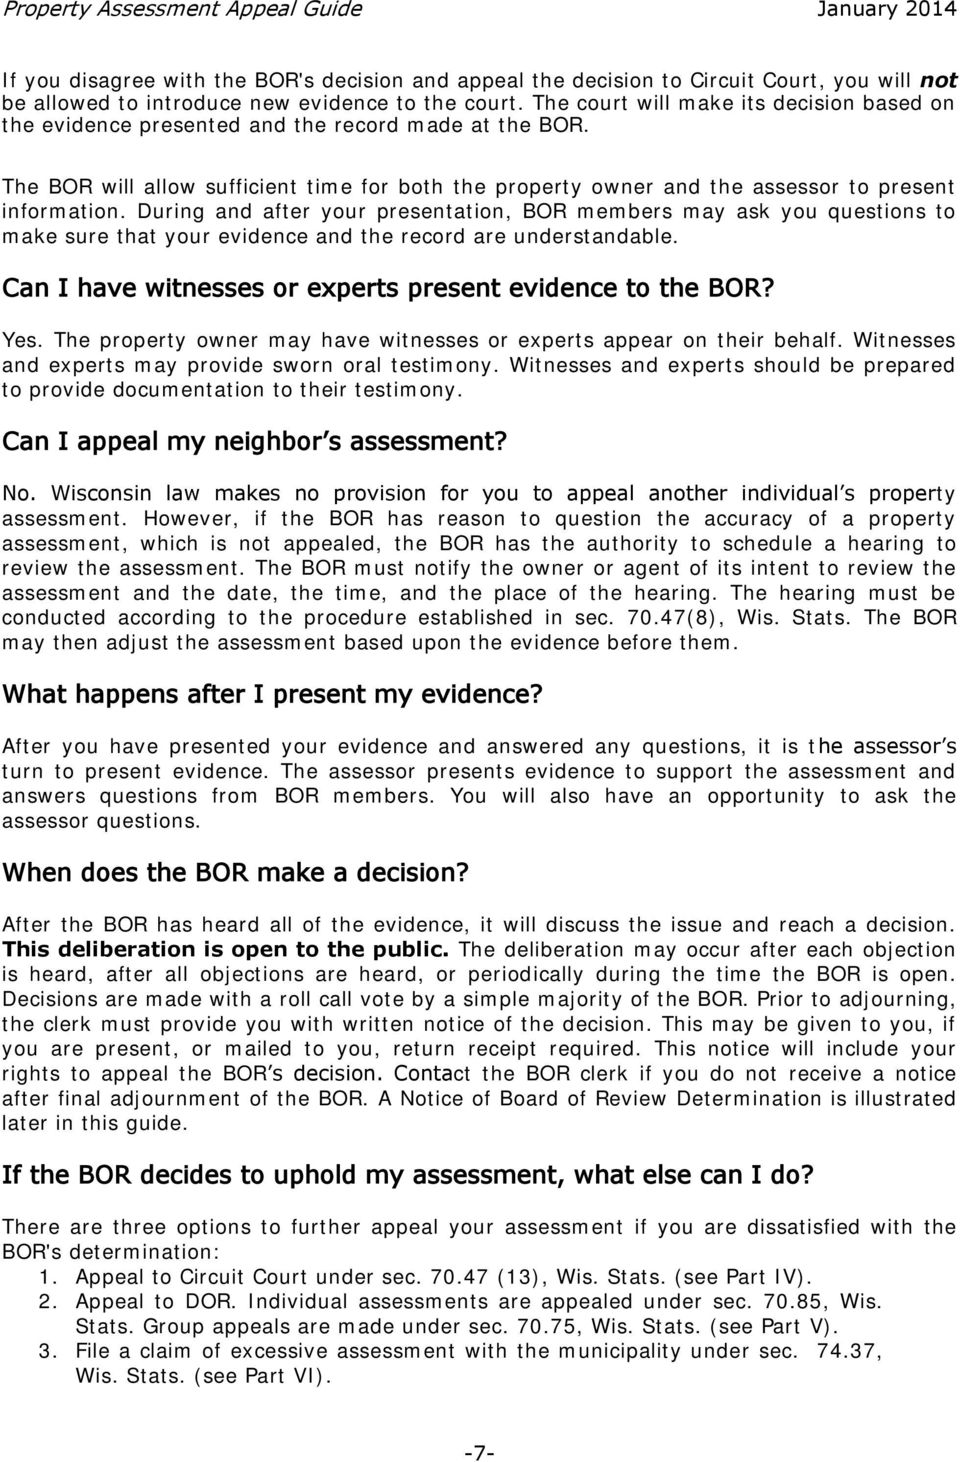 During and after your presentation, BOR members may ask you questions to make sure that your evidence and the record are understandable. Can I have witnesses or experts present evidence to the BOR?